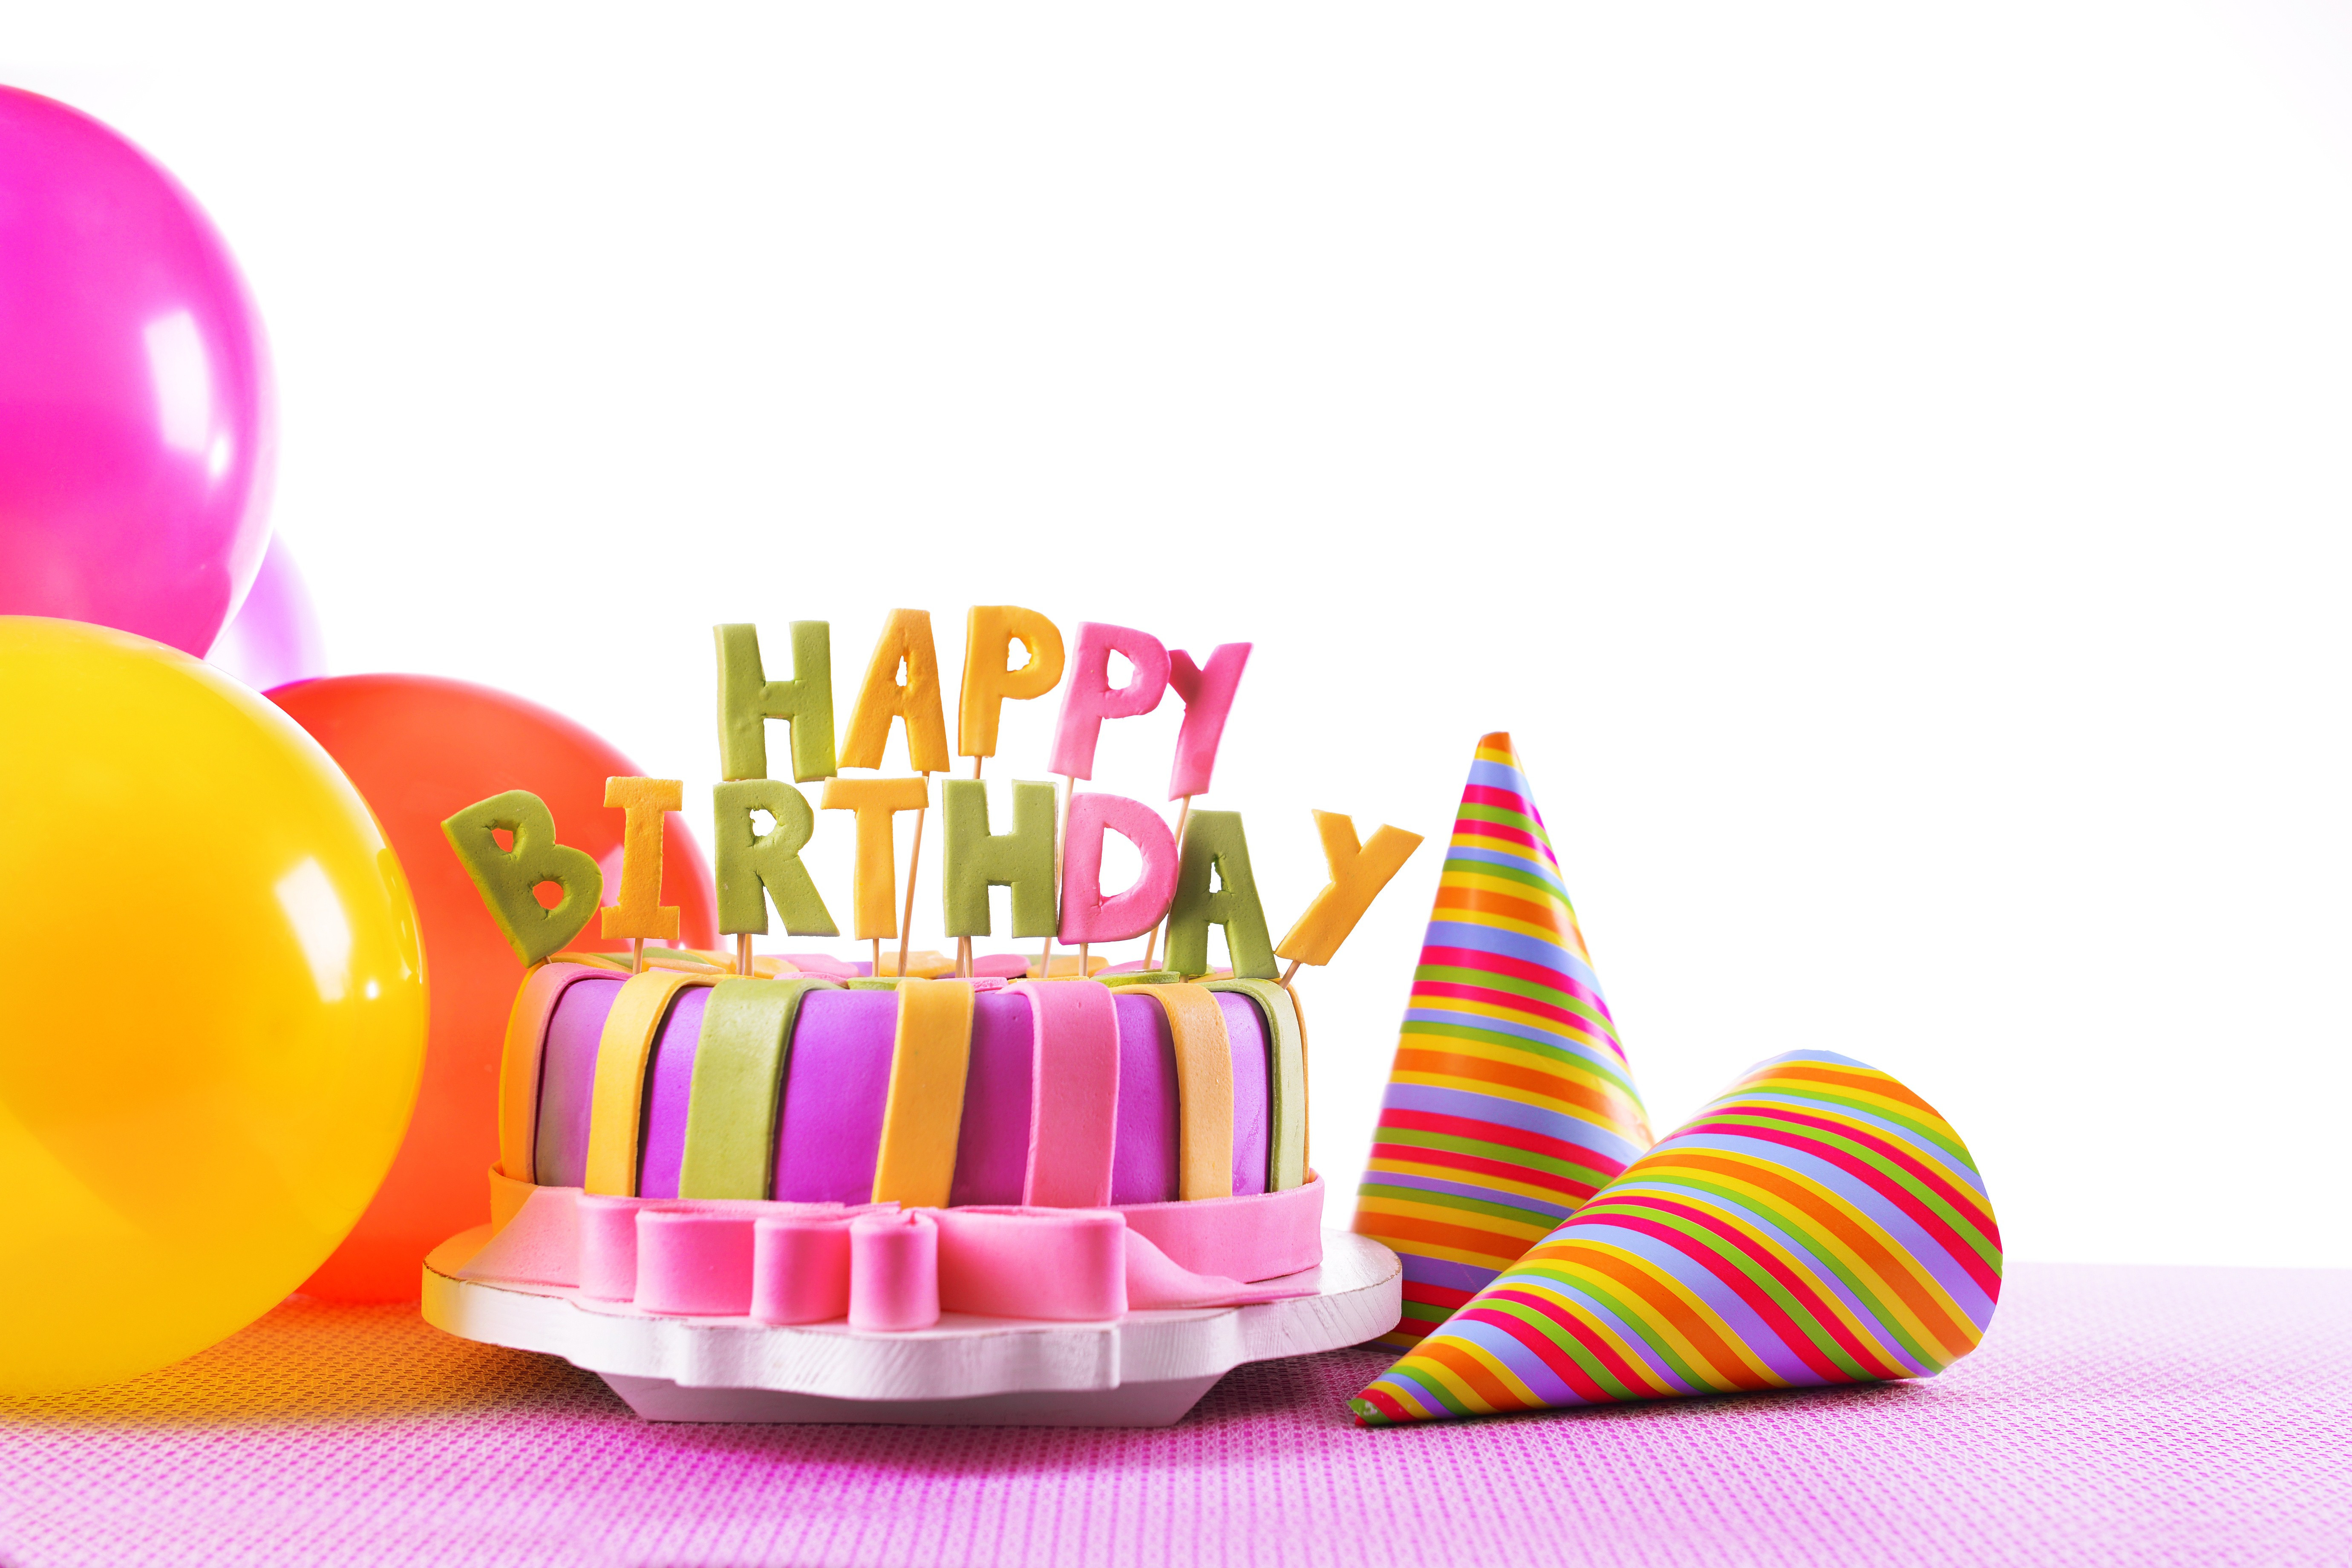 Best ideas about Birthday Cake Wallpaper . Save or Pin Happy Birthday on Cake HD Wallpaper Now.